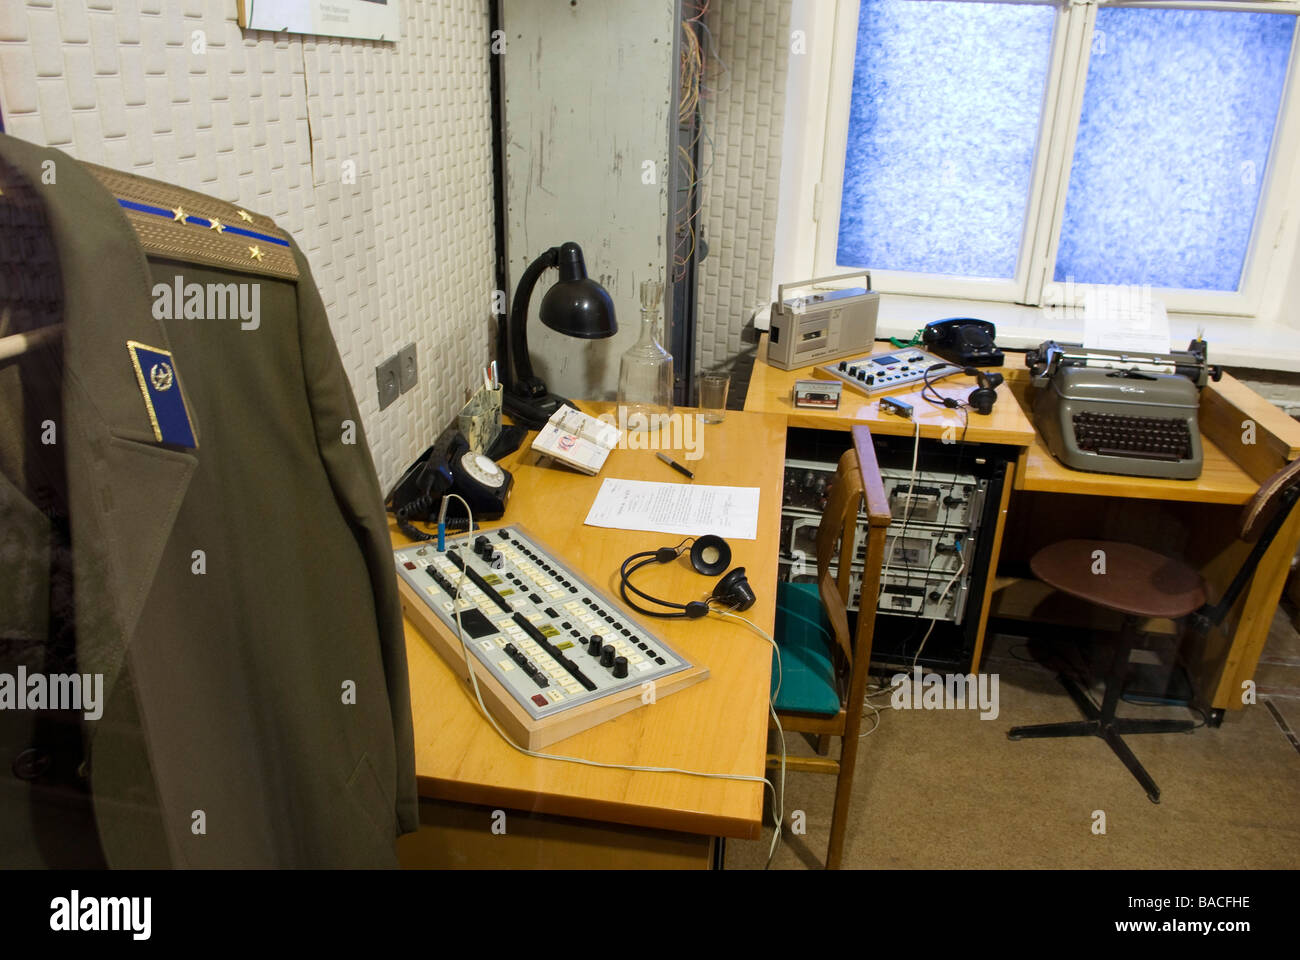 Lithuania (Baltic States), Vilnius, genocide victims museum, former KGB headquarters, Auku 2a, the telephone room - Stock Image